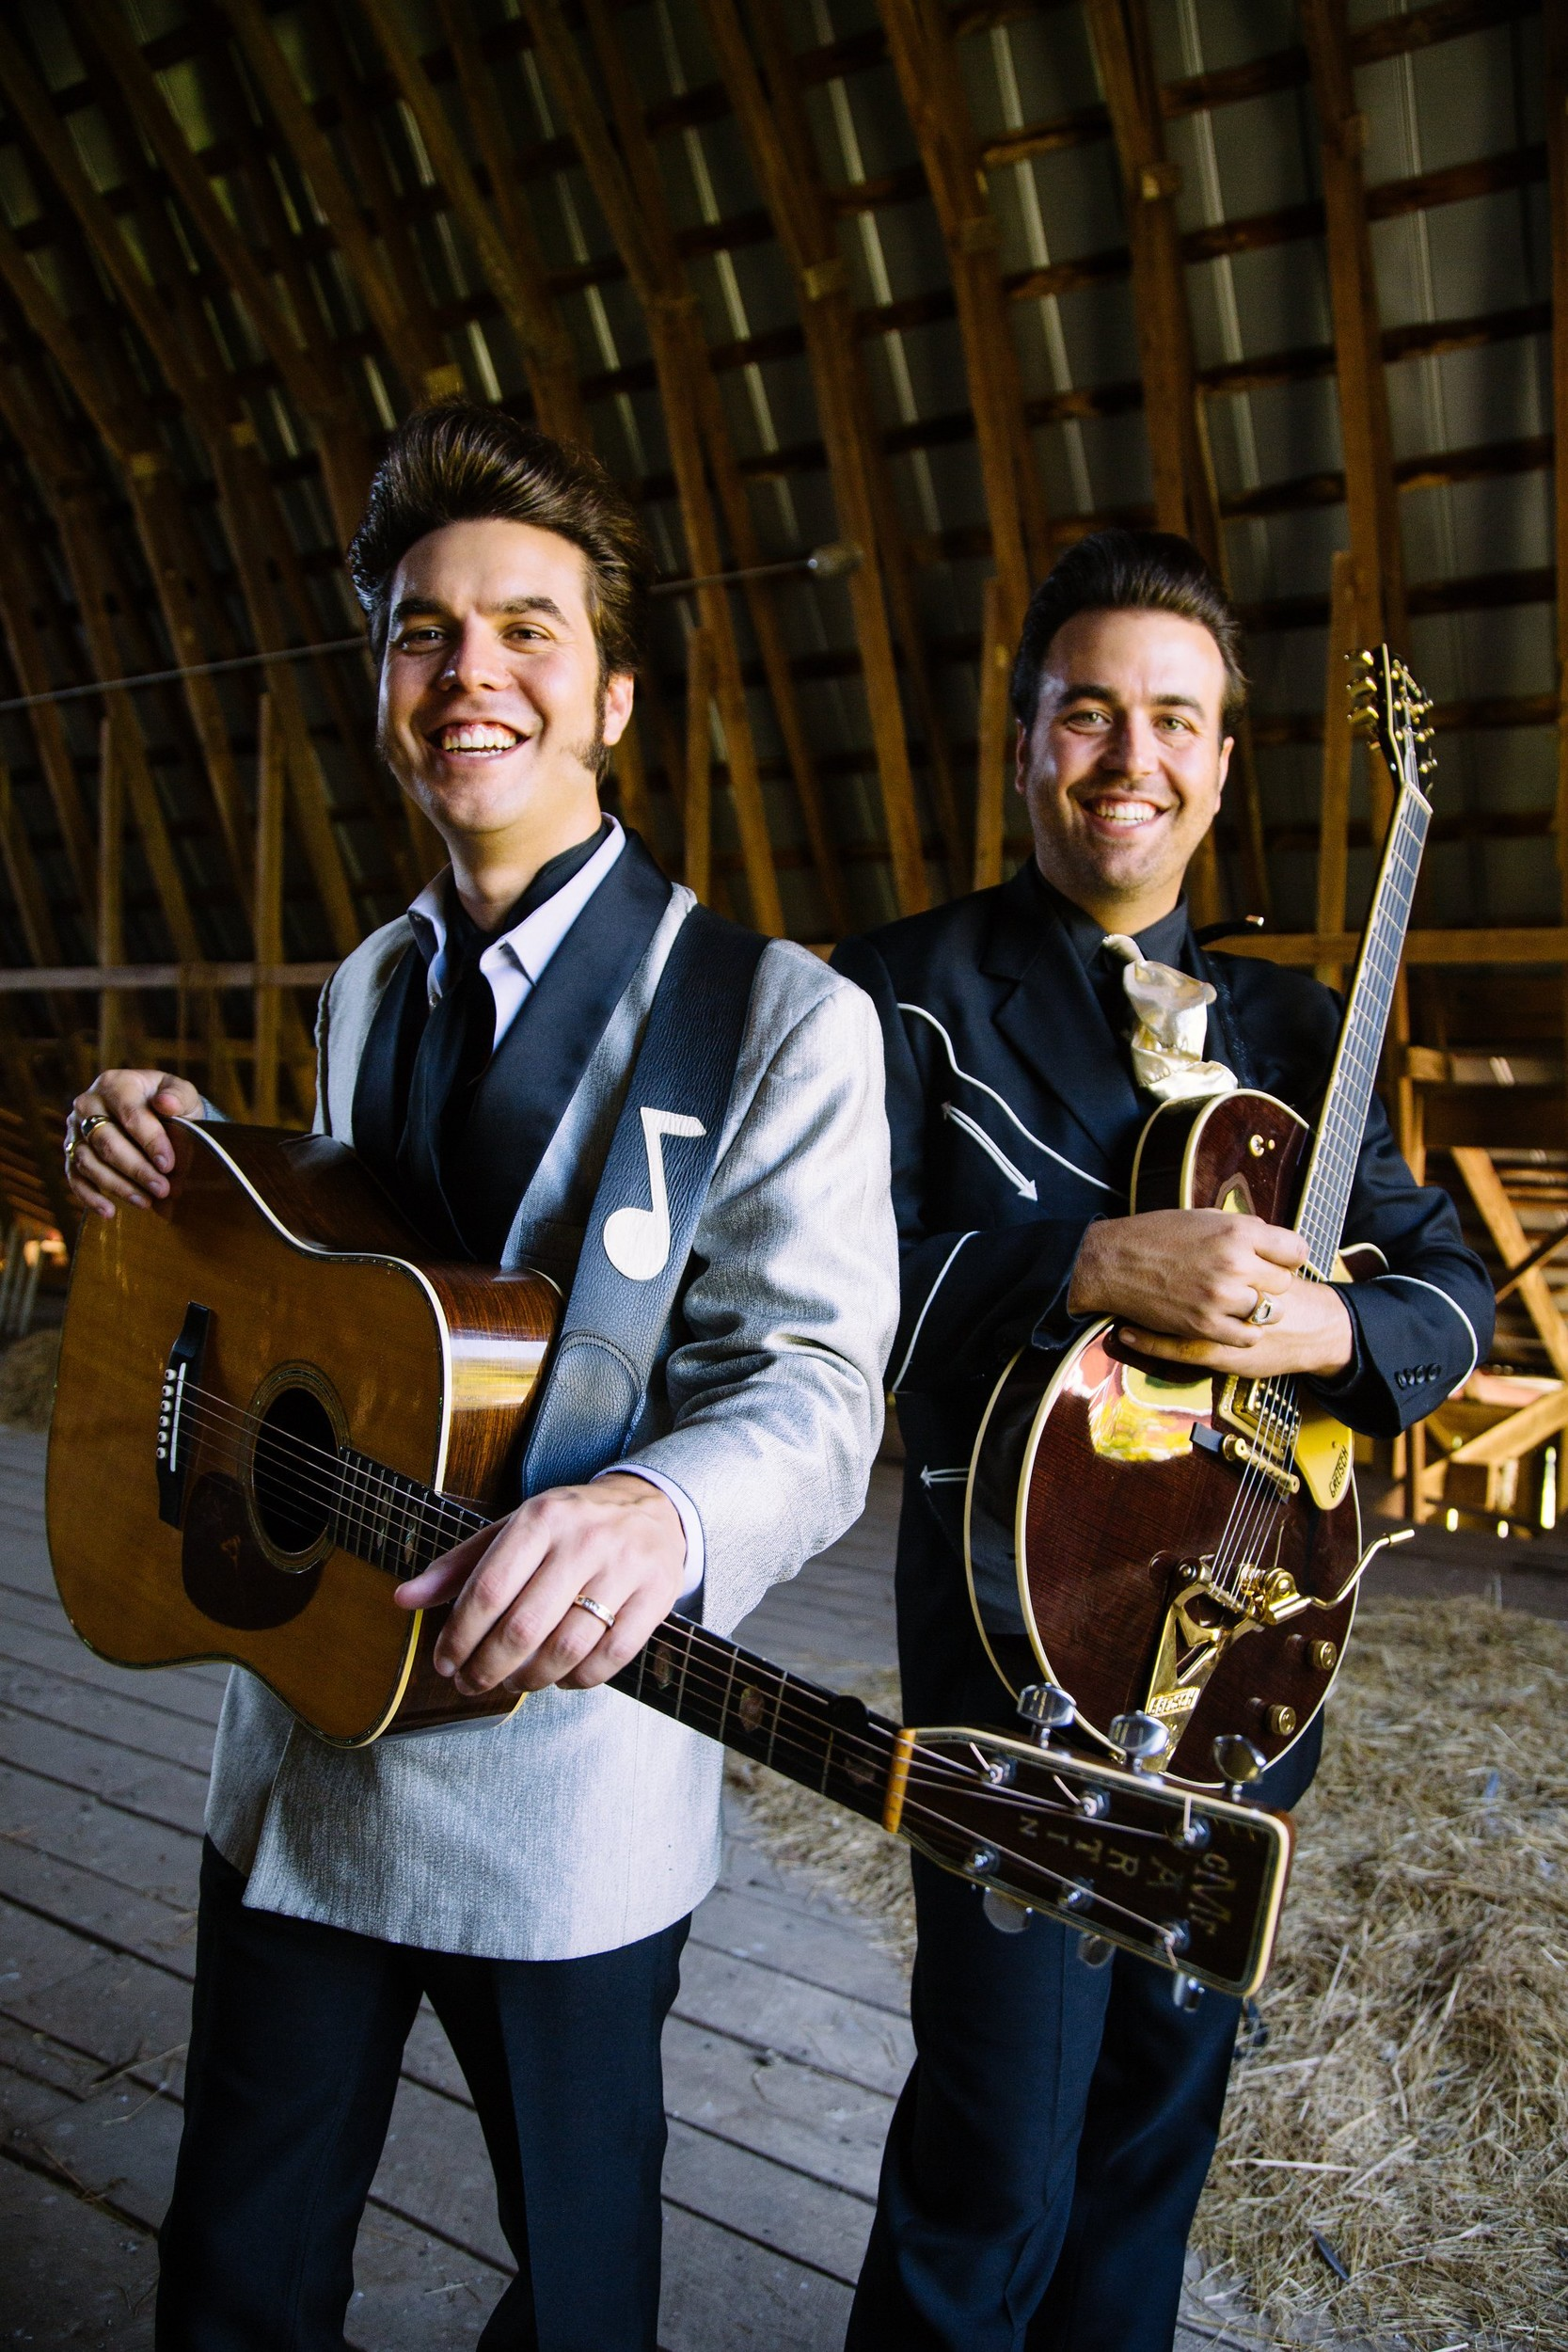 Christopher and Taylor Malpass, the Malpass Brothers, who hail from eastern North Carolina, will appear on a double bill with the Quebe Sisters at the Sumter Opera House on Oct. 13. Sumter Cultural Manager Seth Reimer continues to add nationally known acts to the Opera House's 2017-18 Main Stage Series.